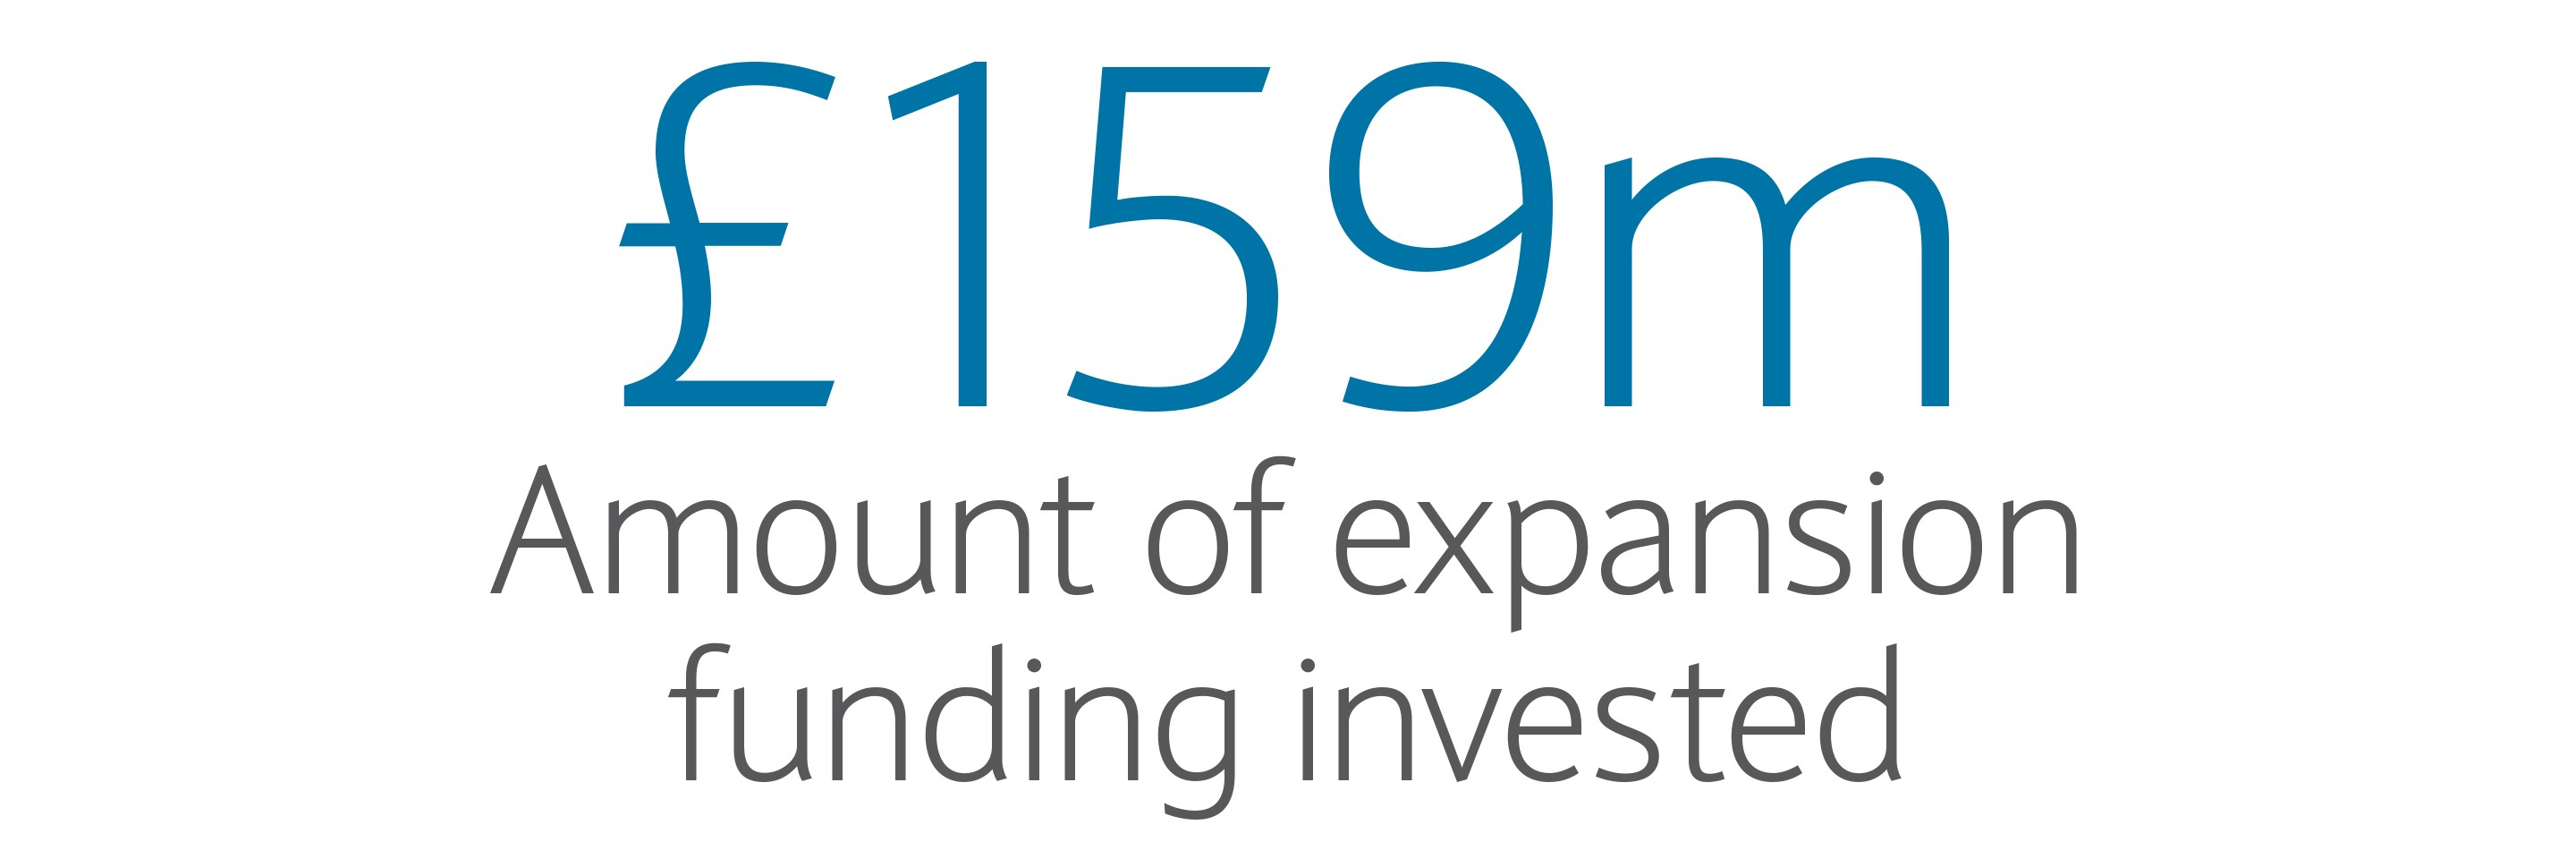 £159m: Amount of expansion funding invested